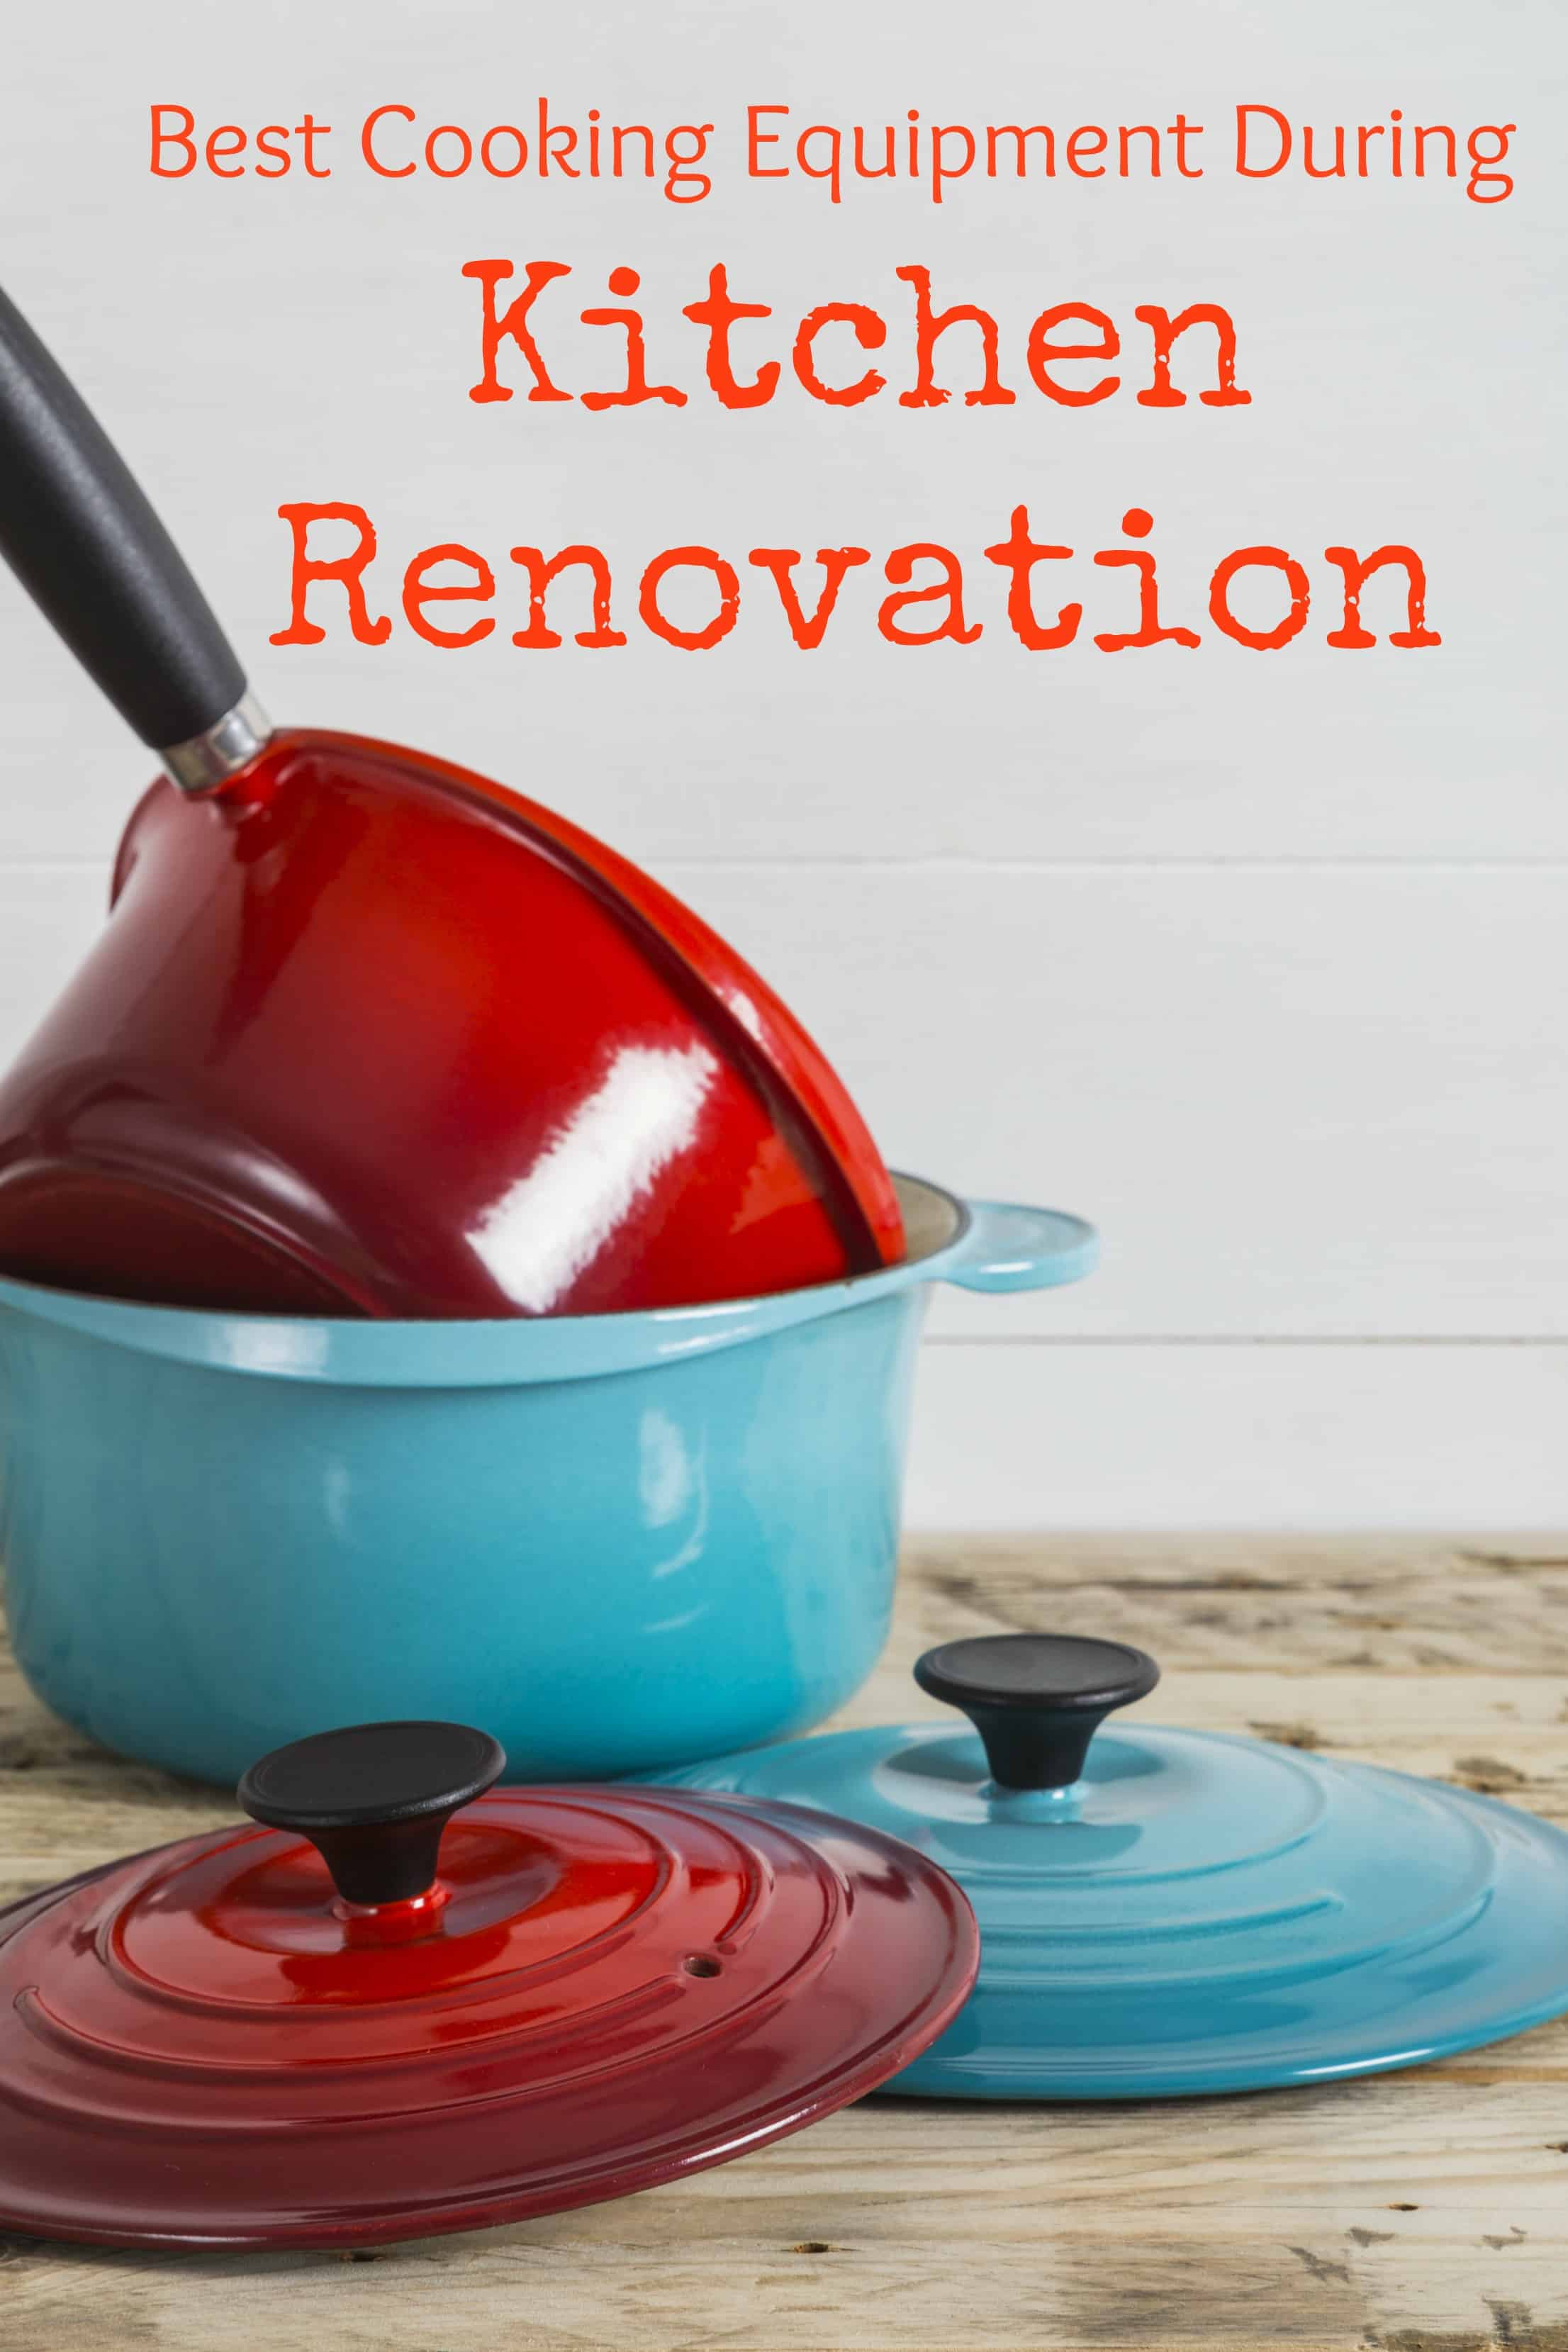 Best Cooking Equipment During Kitchen Renovation